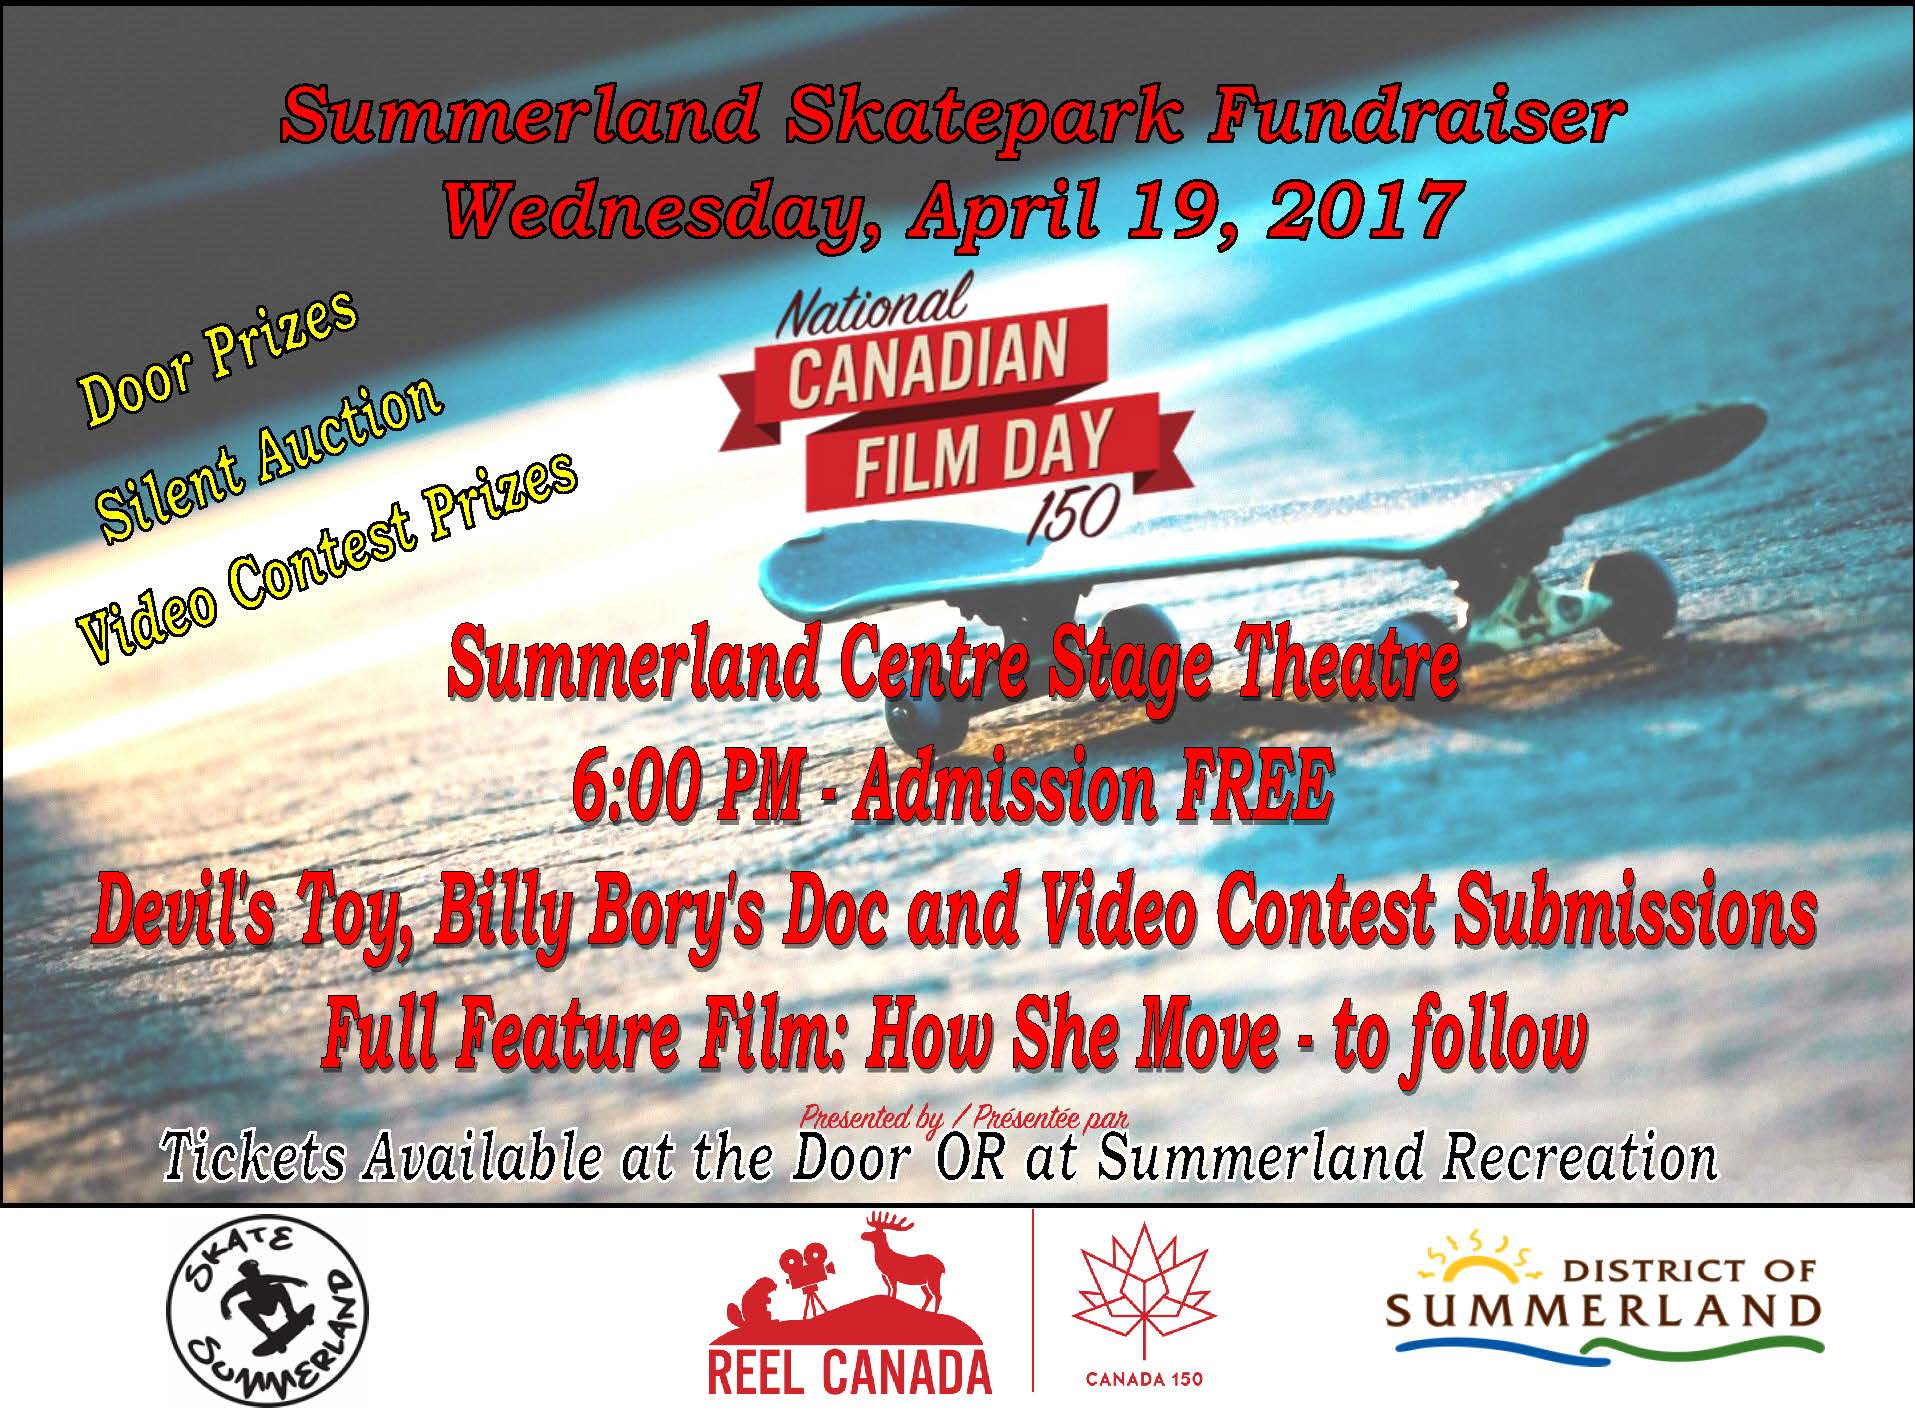 National Canadian Film Day Fundraiser April 19, 2017